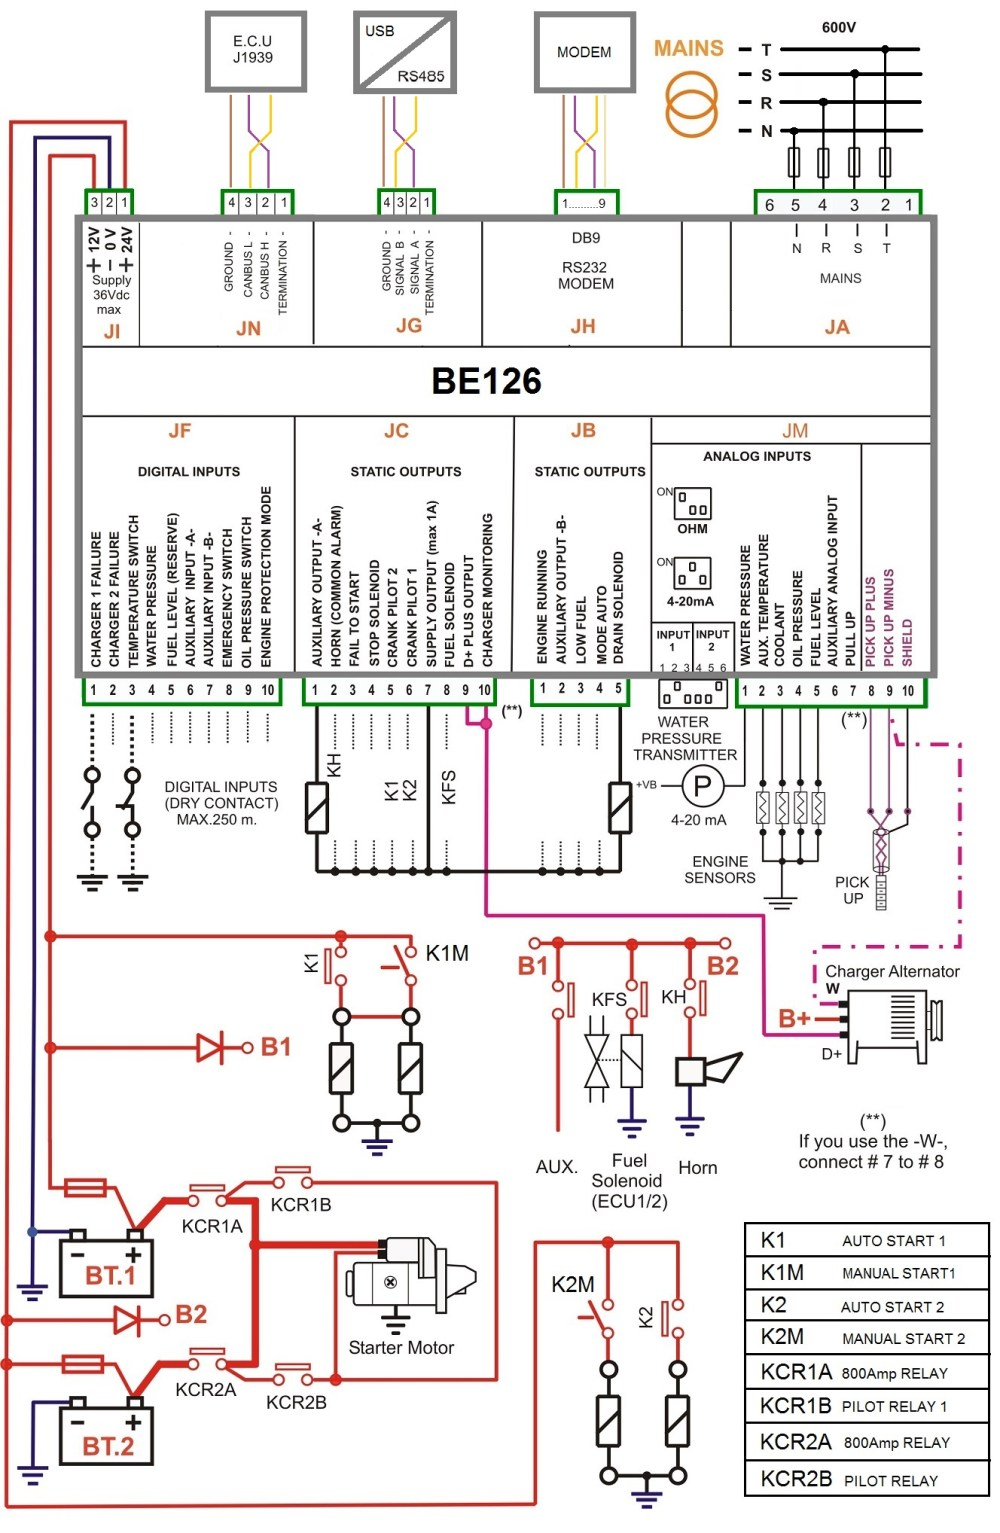 medium resolution of pump control schematic wiring diagram sort pump control wiring diagram search wiring diagram pump control schematic